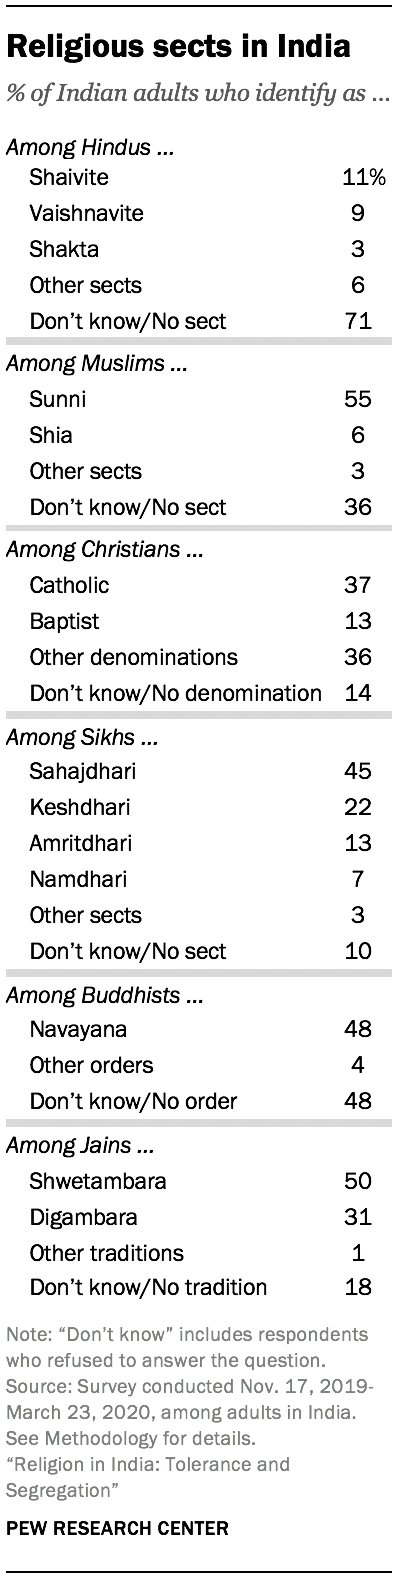 Religious sects in India